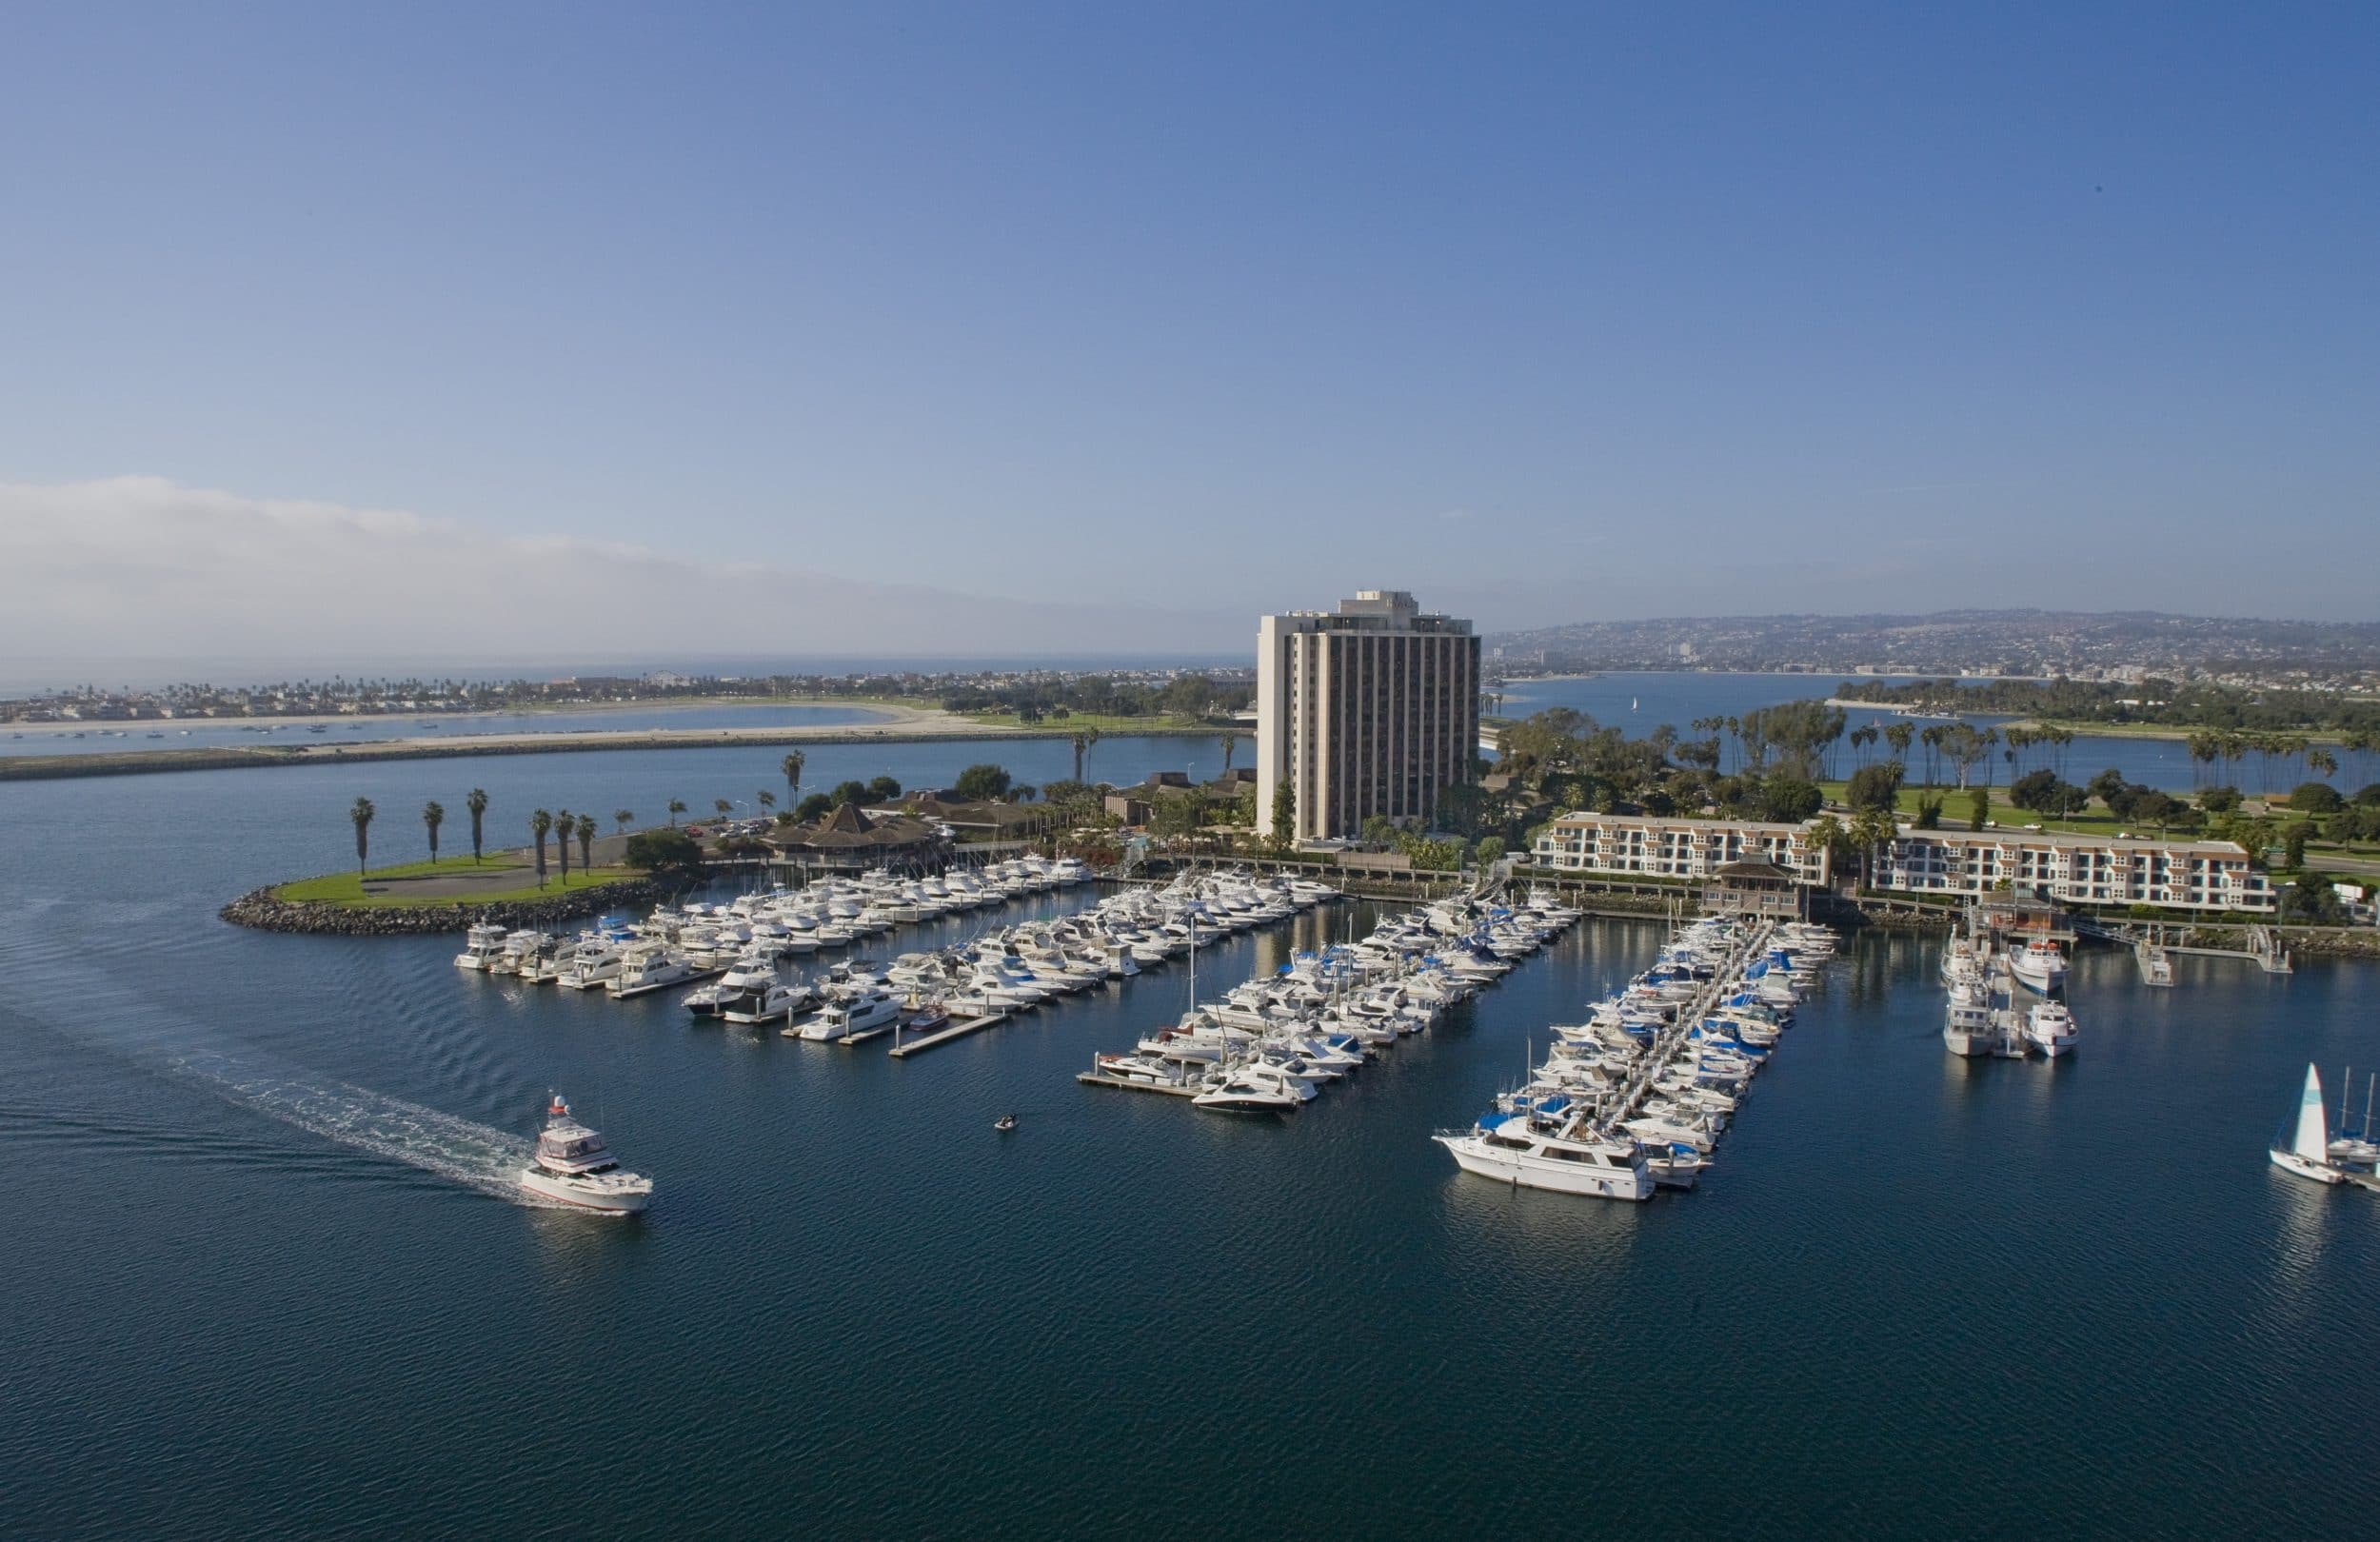 Boats in the marina at Hyatt Regency Mission Bay hotel